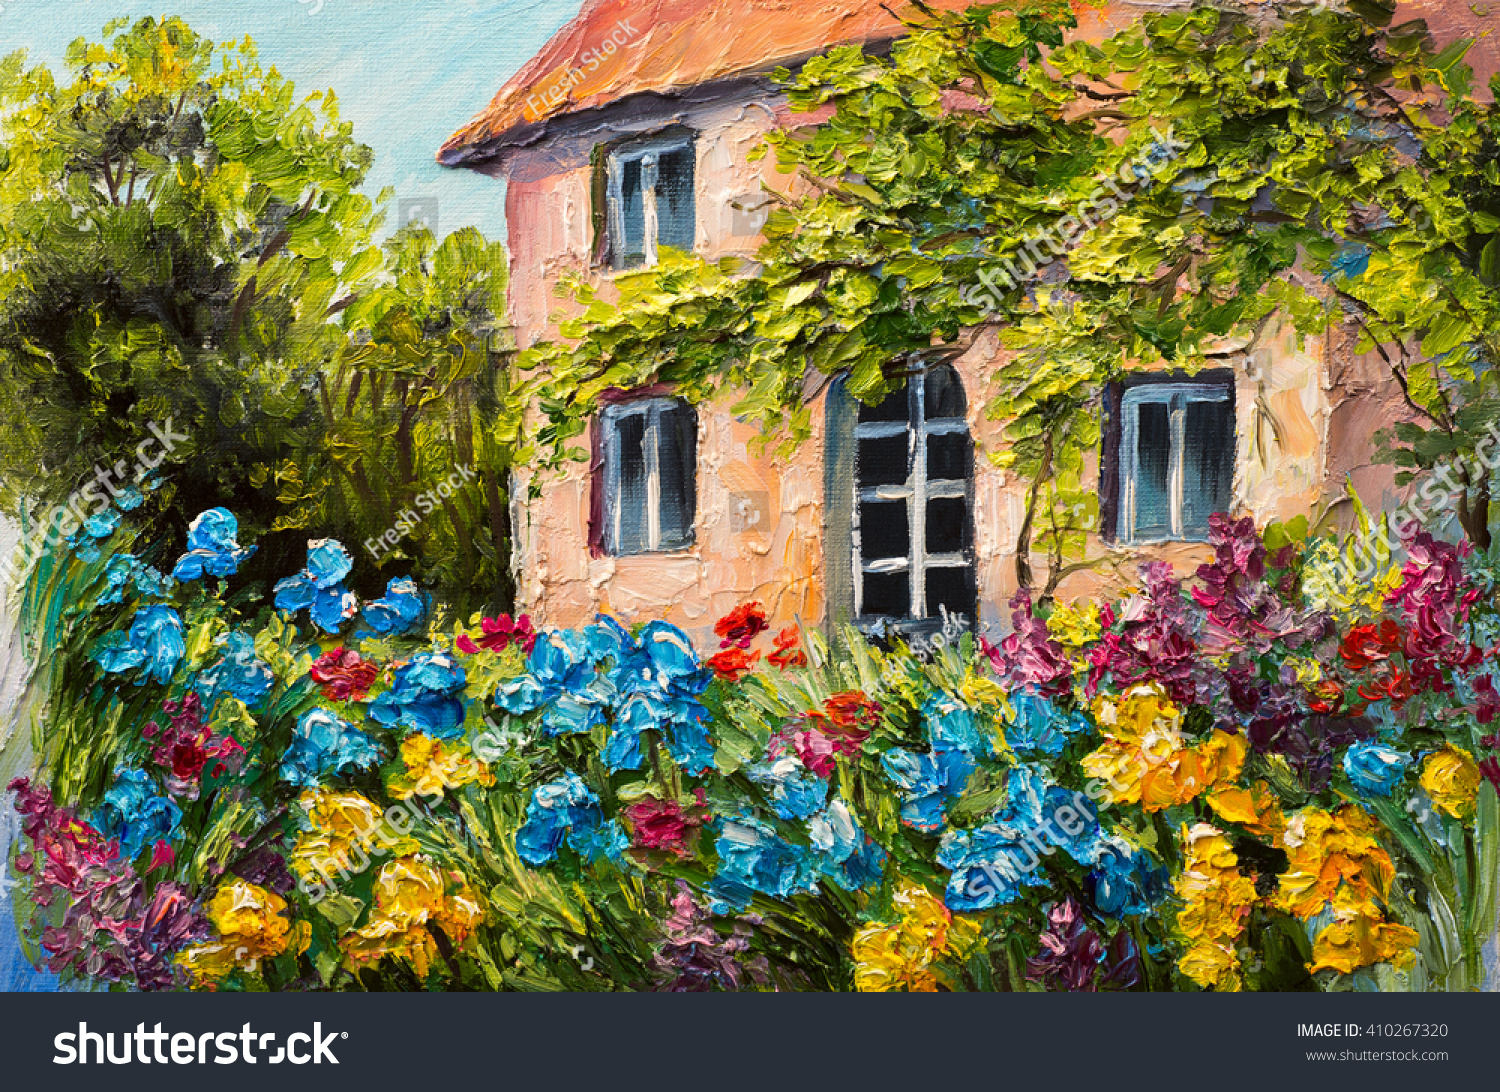 Oil painting landscape house flower garden stock for Classic house with flower garden